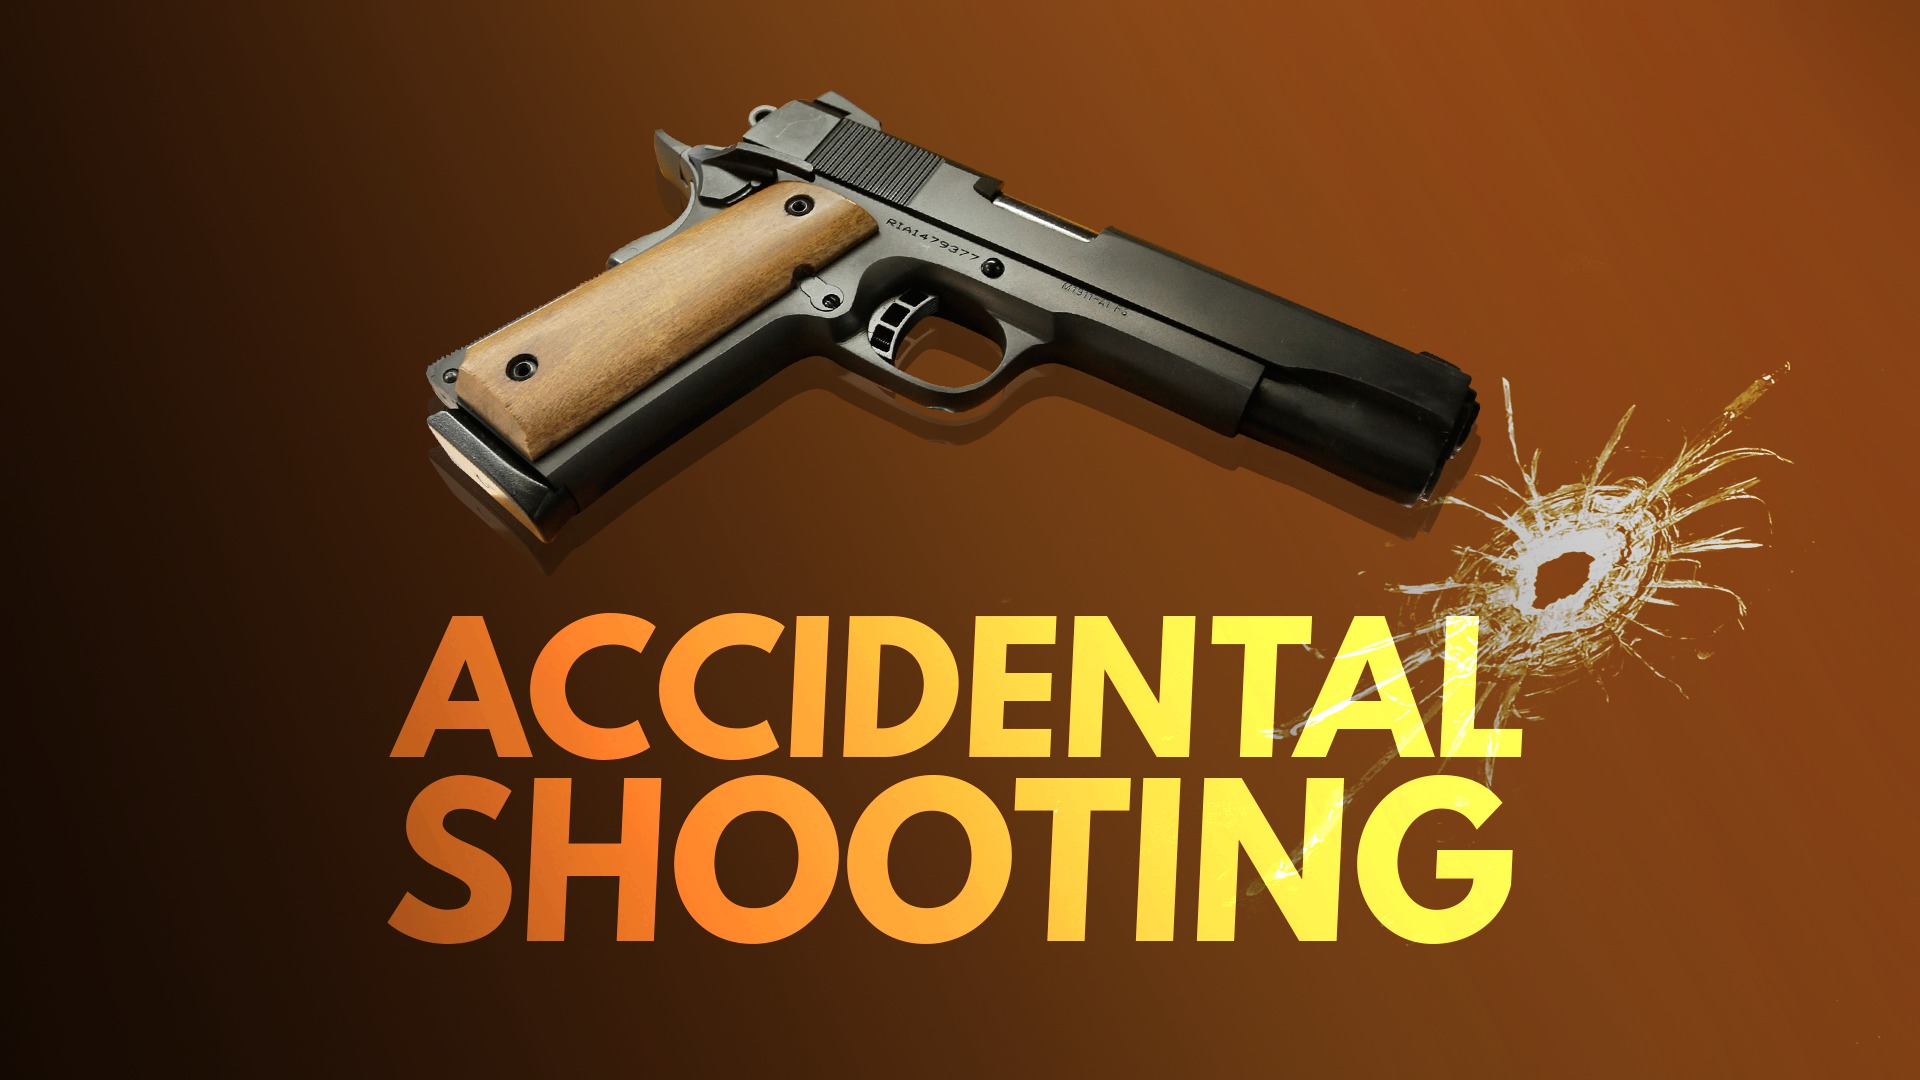 9OYS - Accidental Shooting_409670